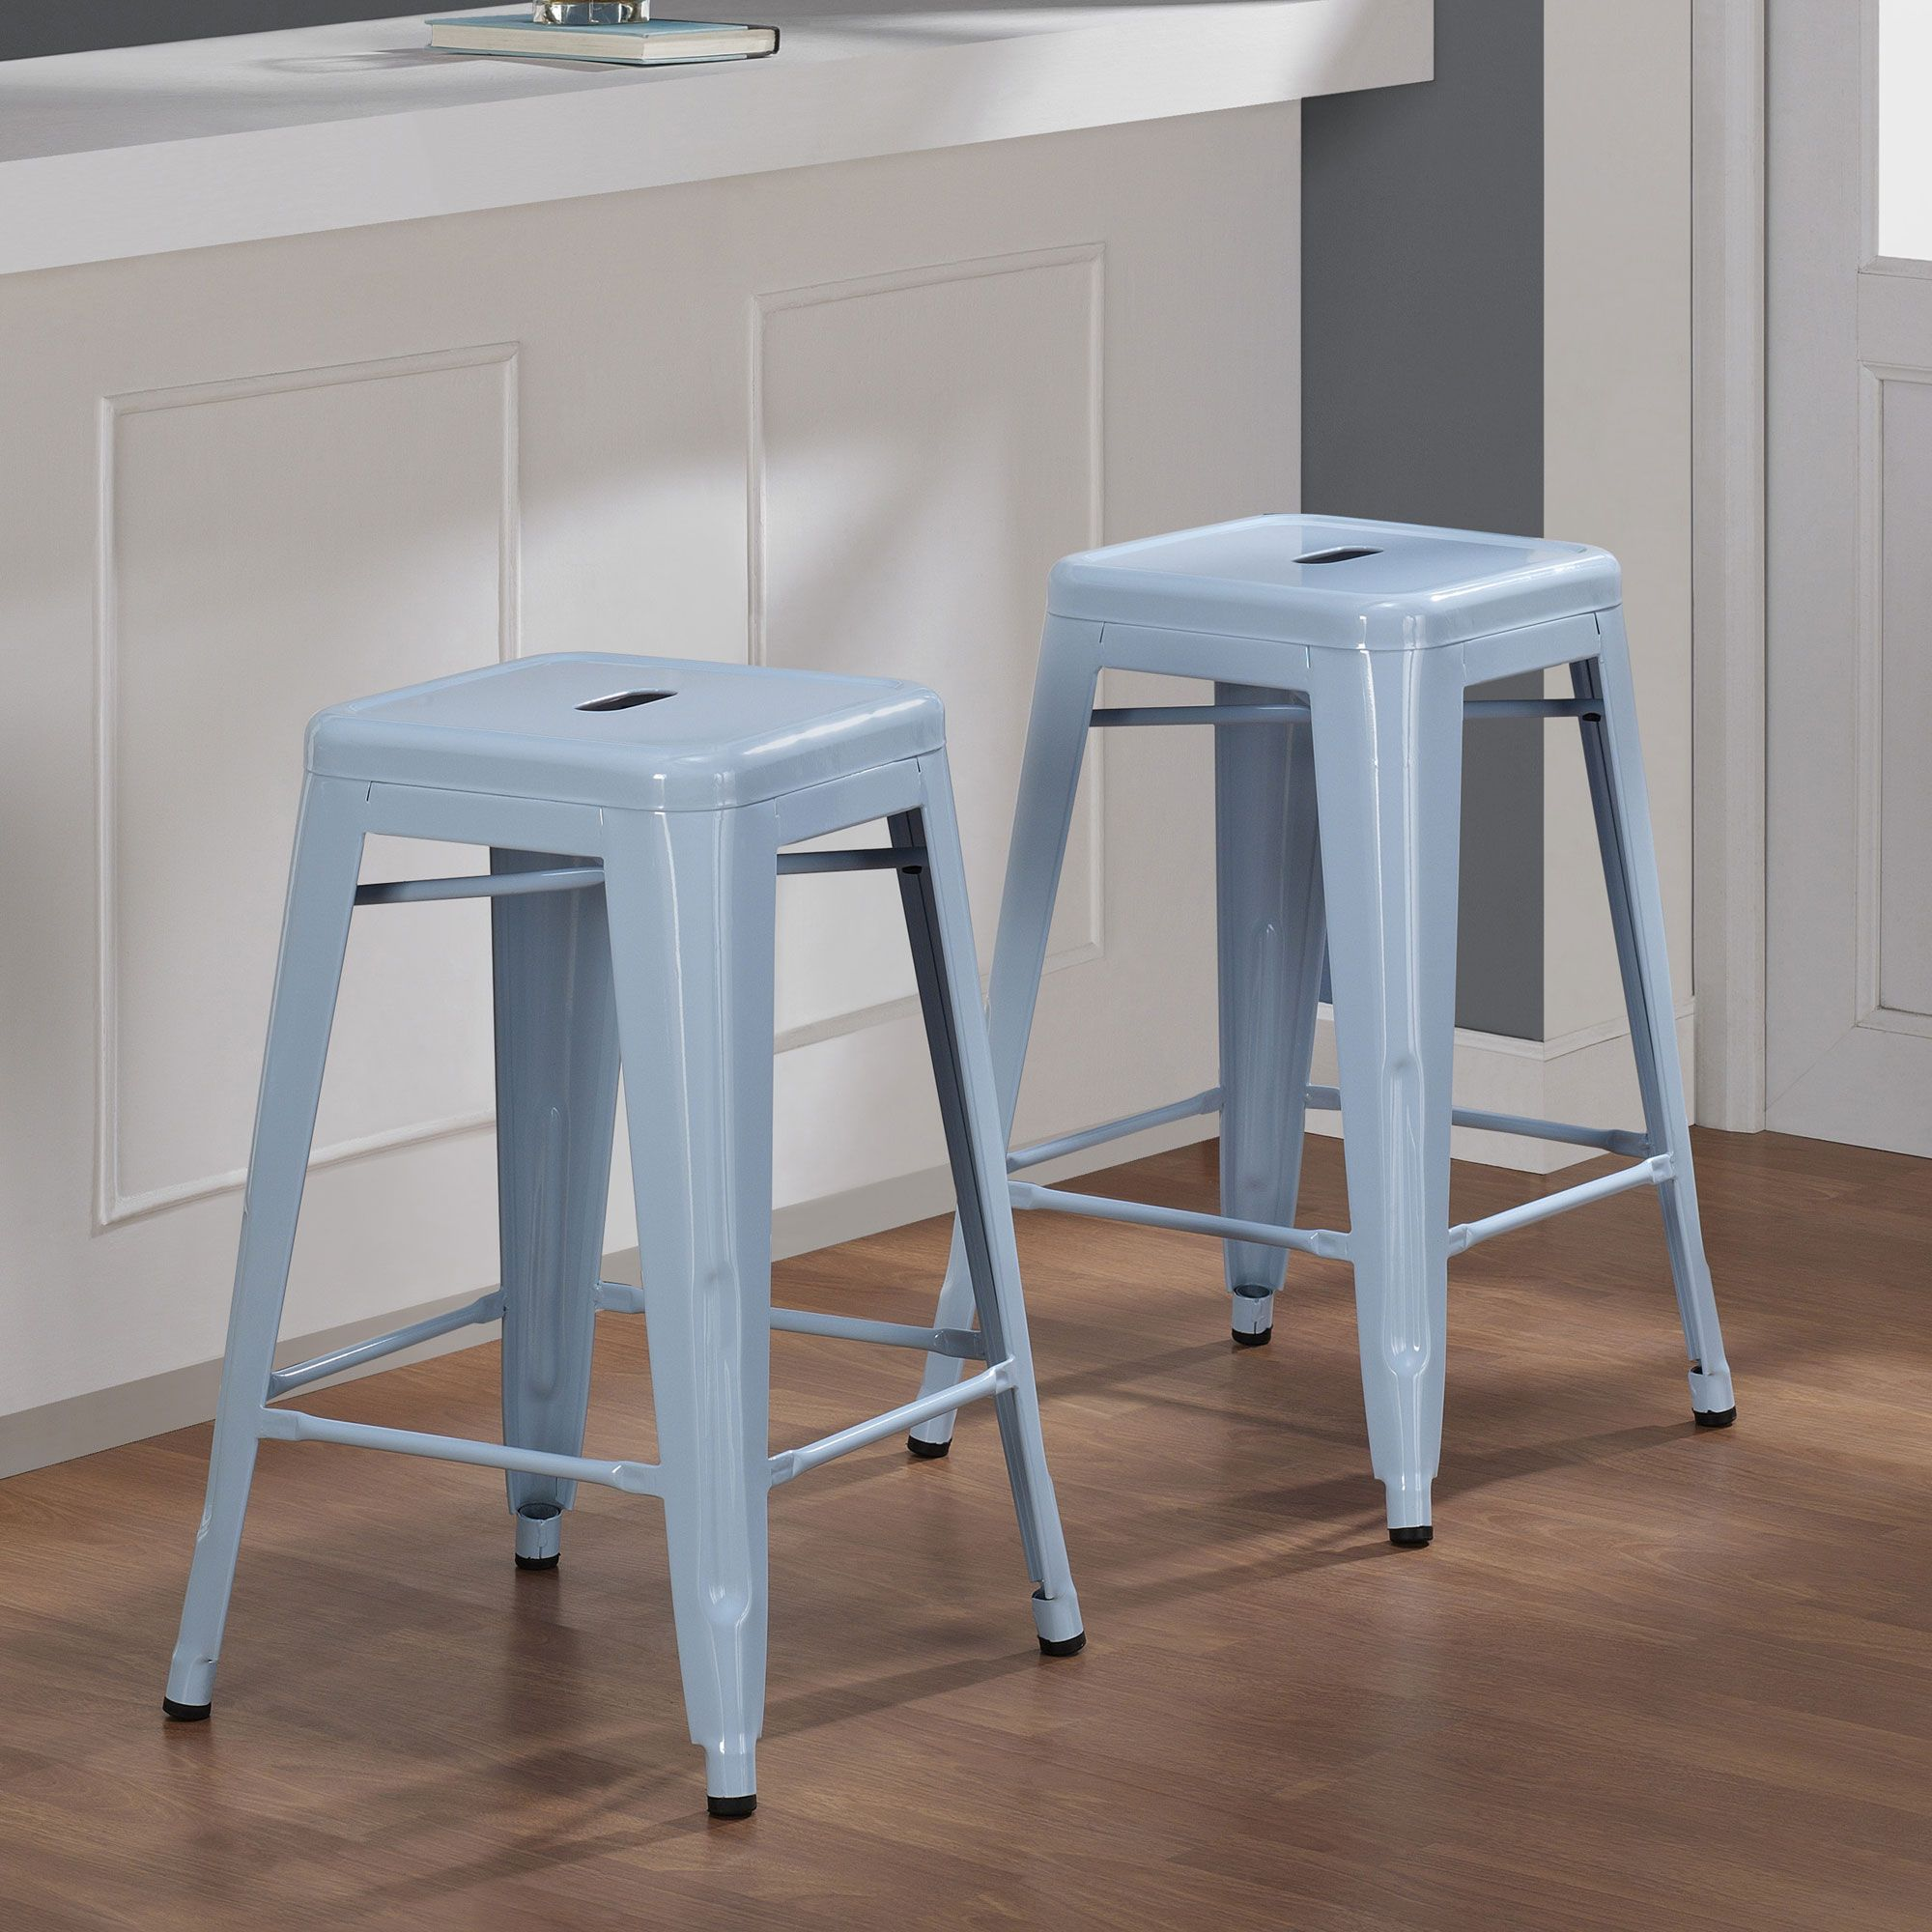 Give Your Kitchen Or Bar A Modern Look With These Stackable Steel Counter Stools Powder